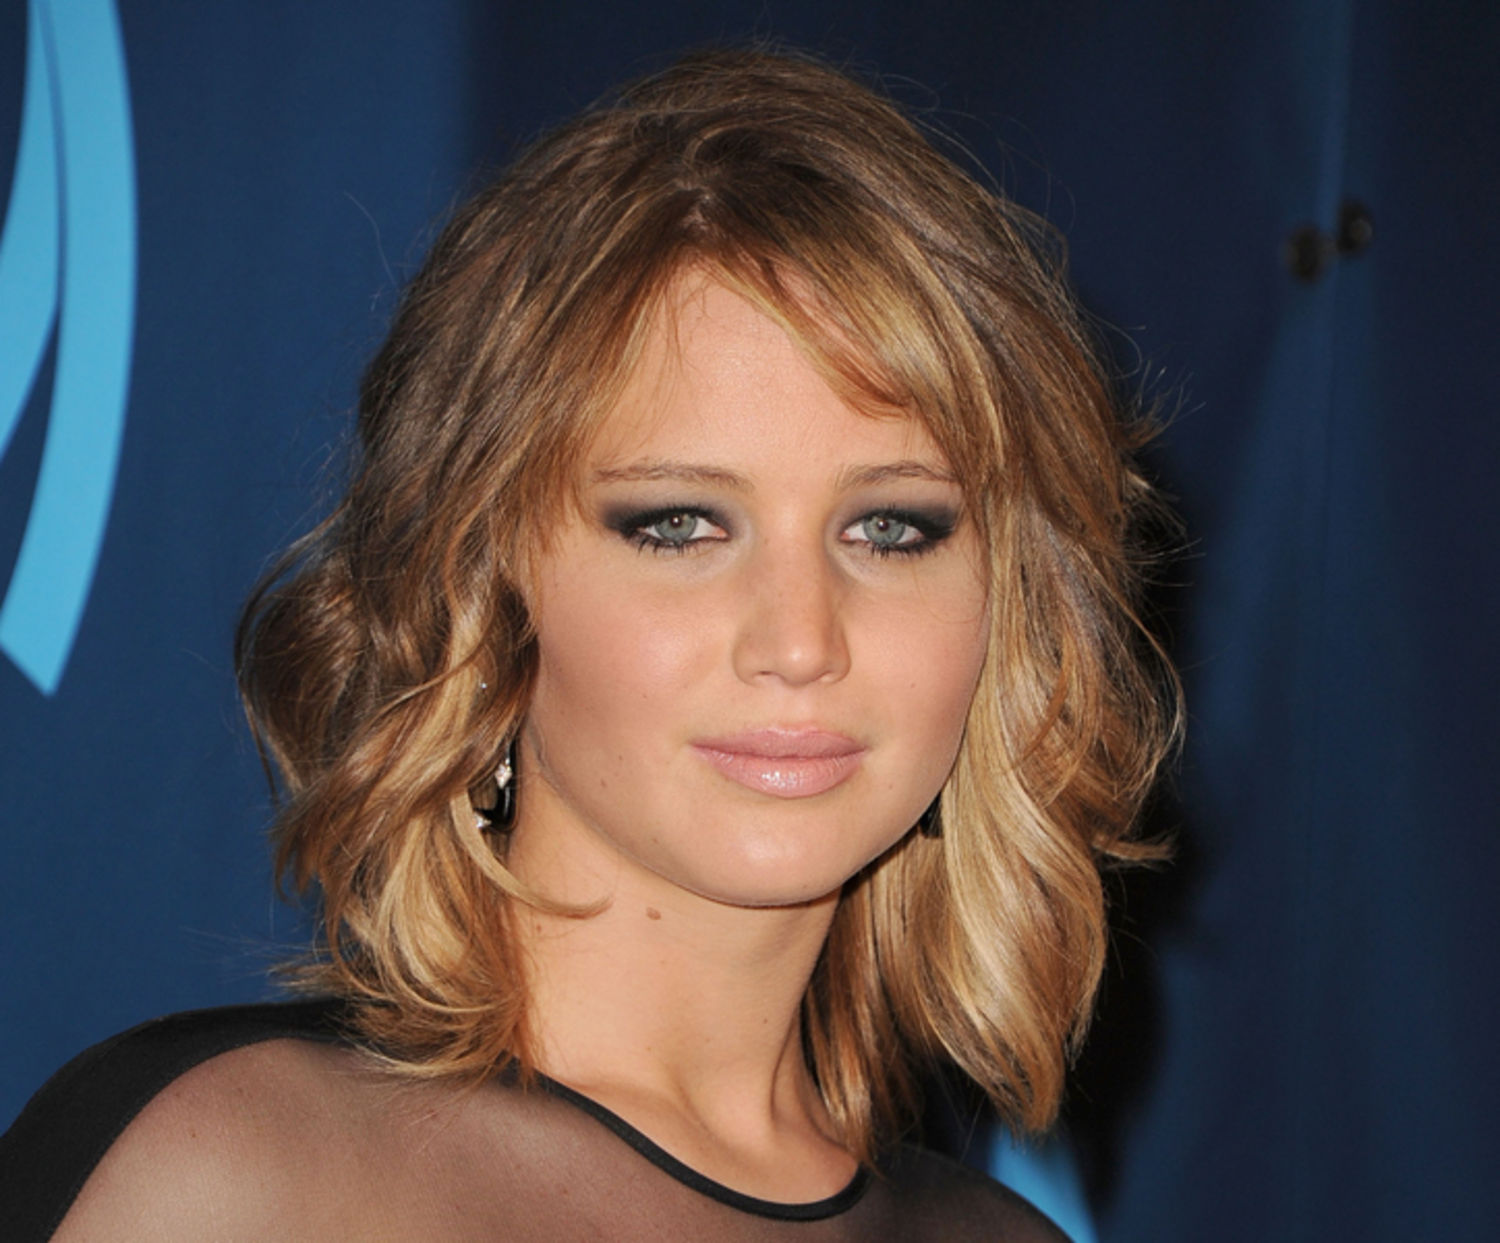 Jennifer Lawrence Haircut 2013 Straight | www.galleryhip.com - The ...